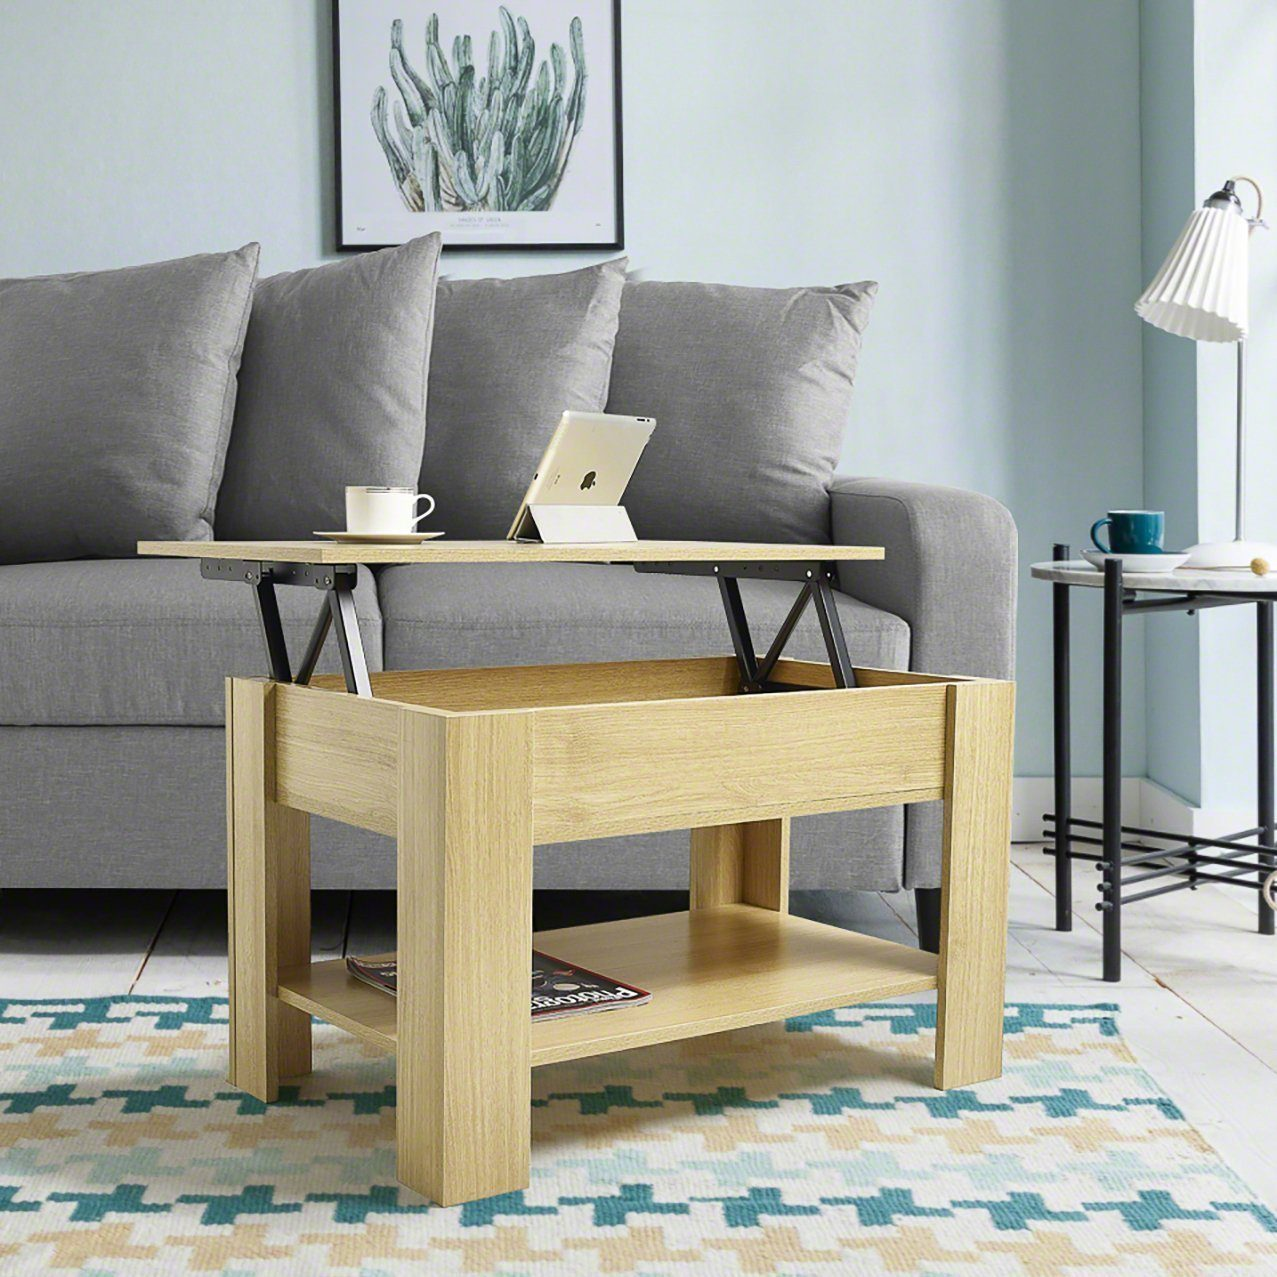 Lift up Top Coffee Table with Storage & Shelf - Oak - Laura James